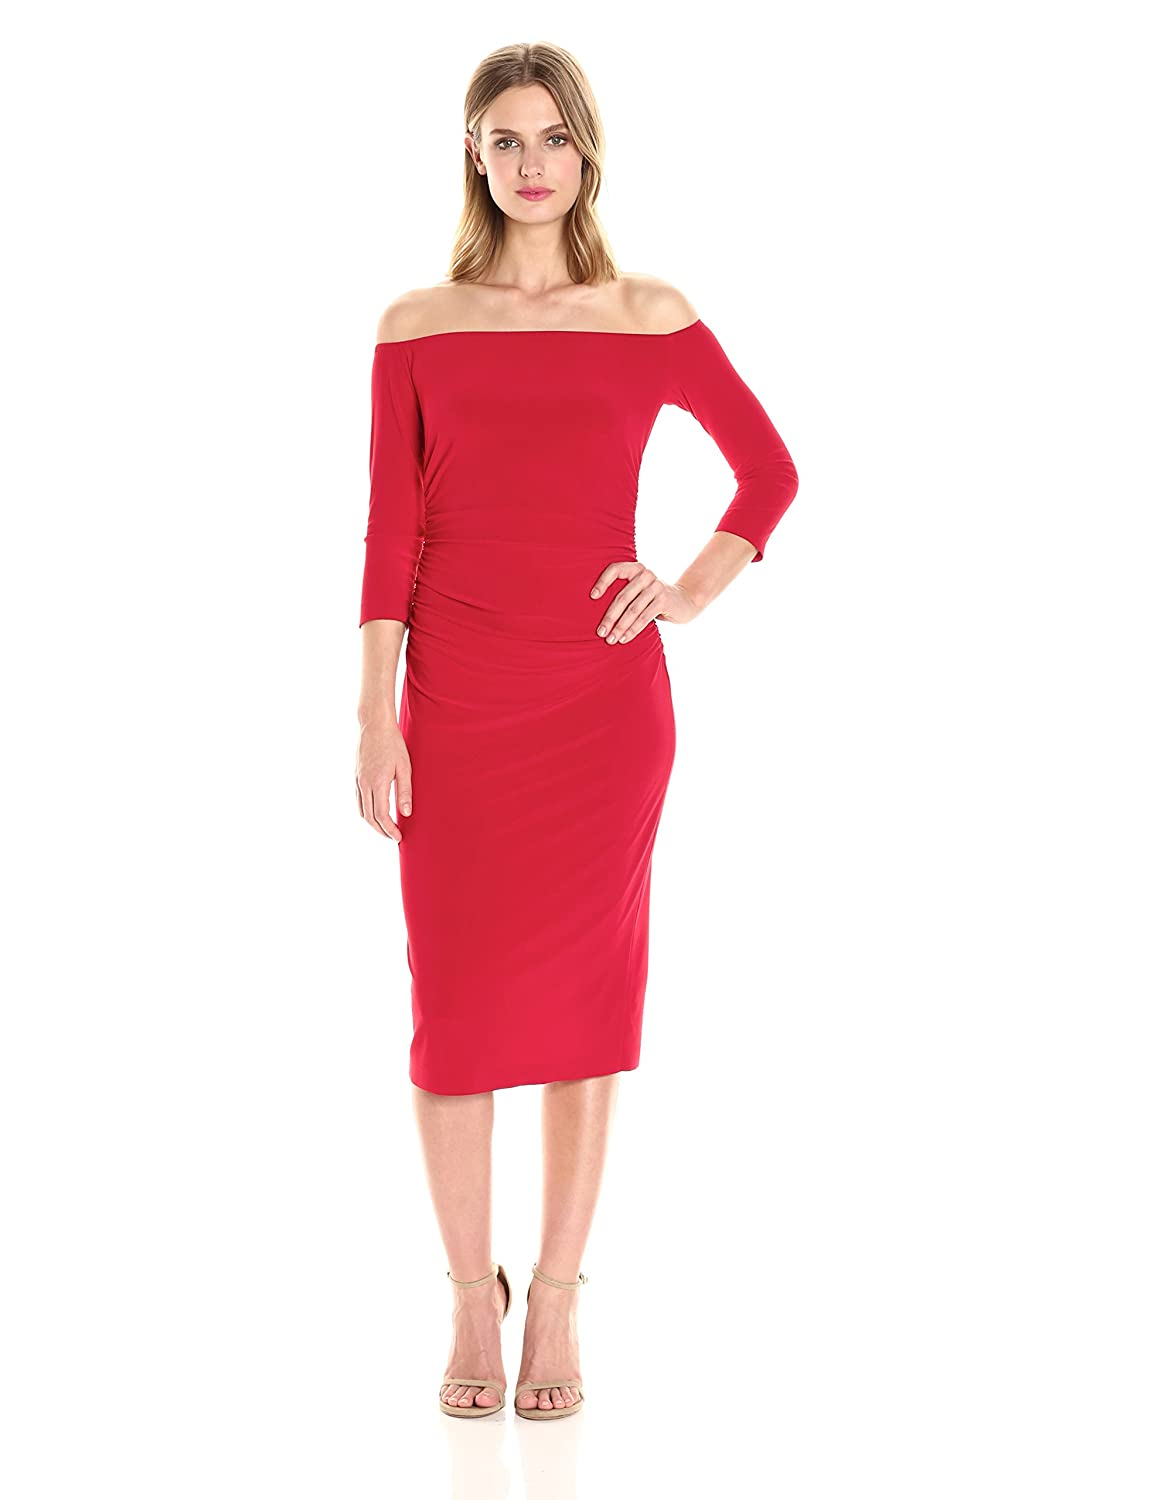 1800c292b6d57 Norma Kamali Women's Off Shoulder Shirred Waist Dress in Red at Amazon Women's  Clothing store: